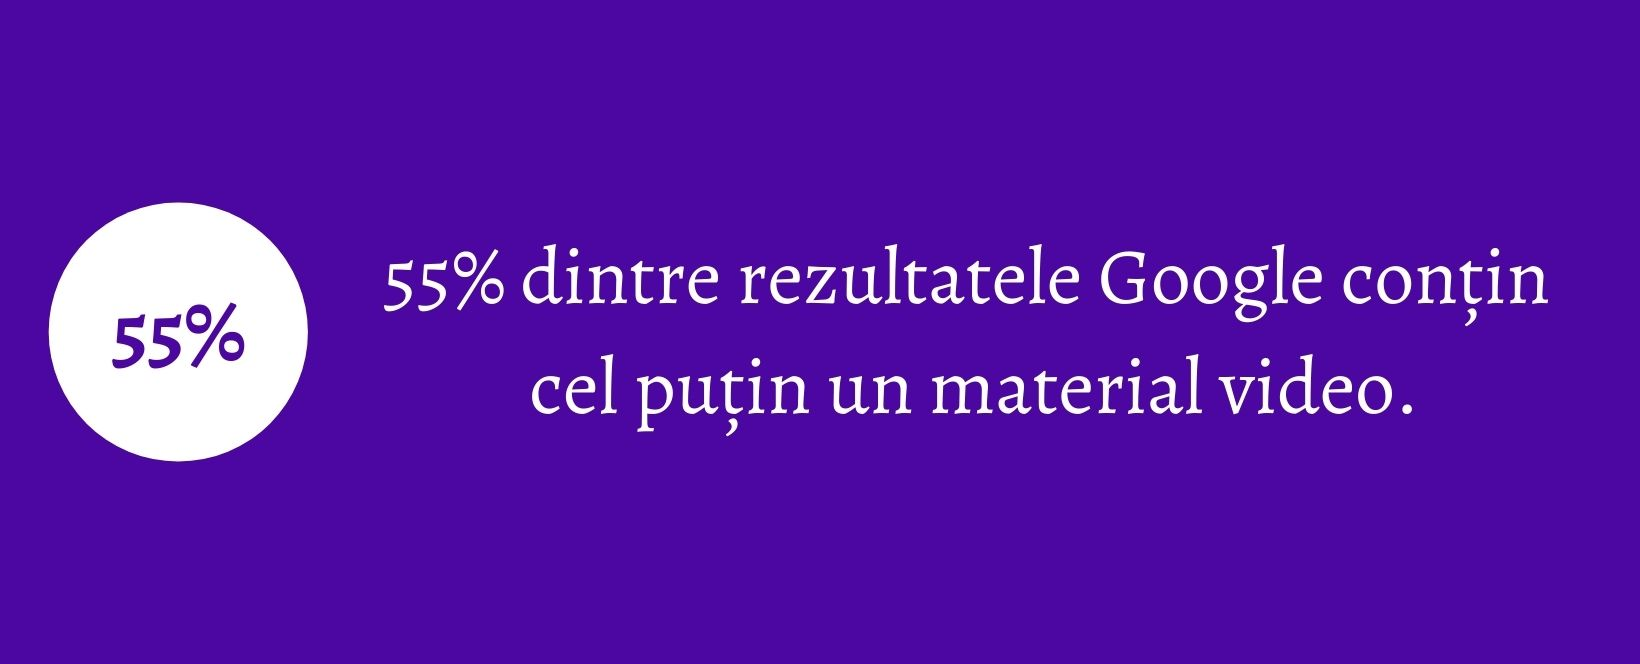 statistici despre materiale video google